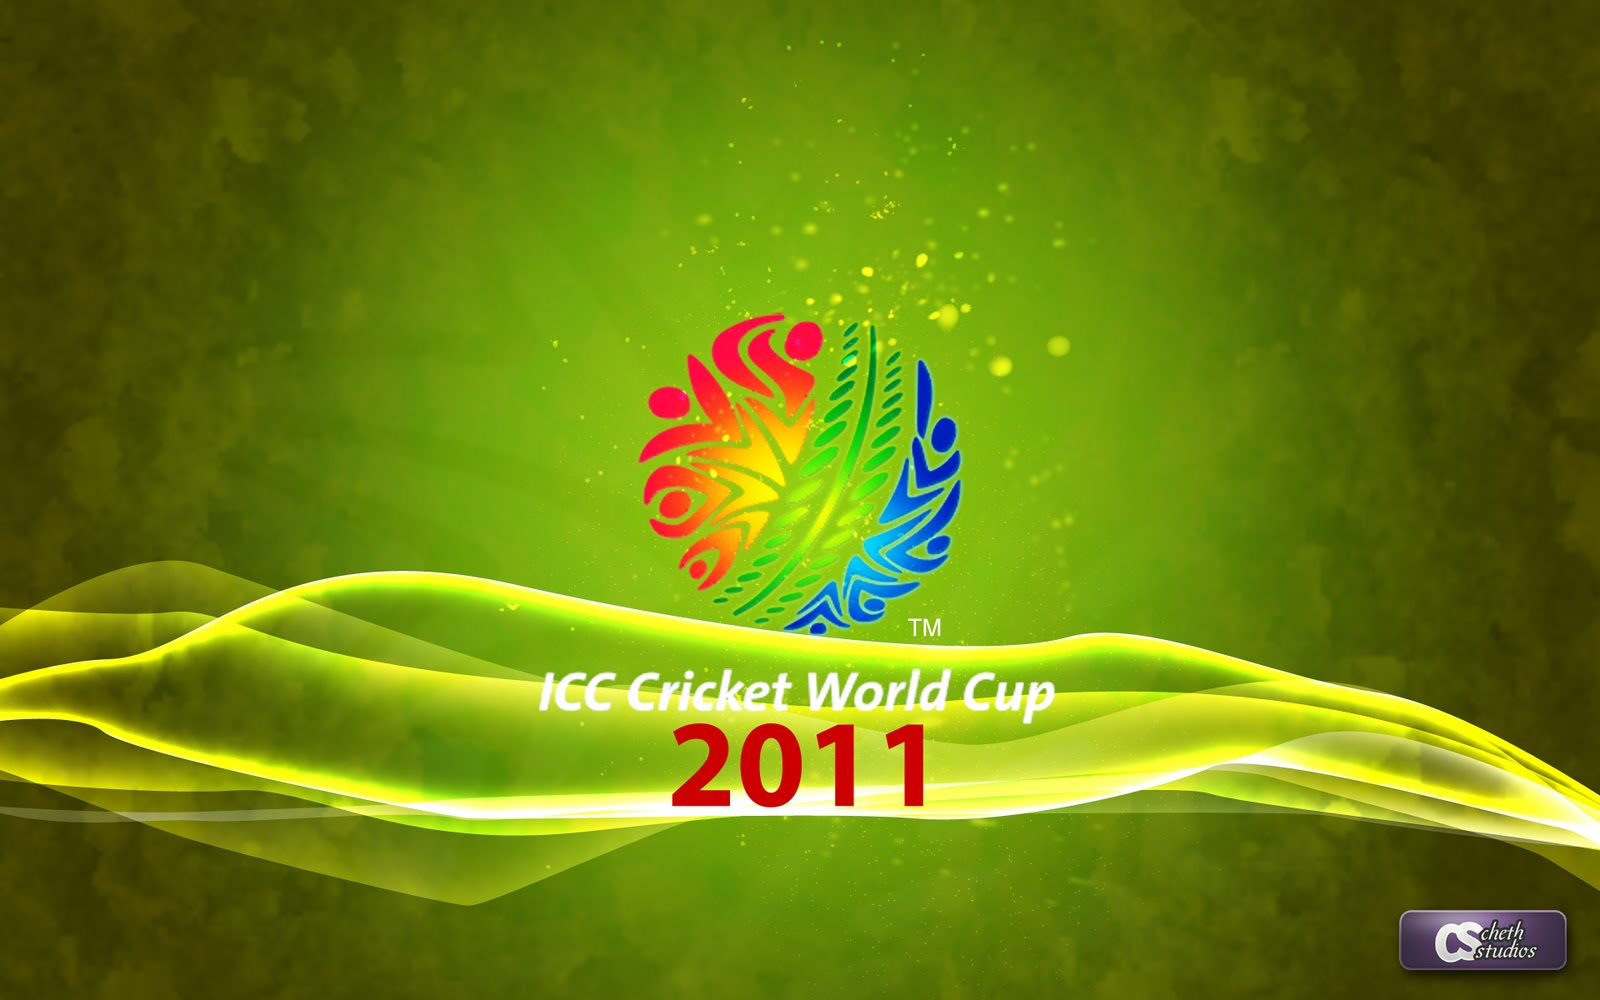 http://1.bp.blogspot.com/-dMF1YUkYZ7I/TZfoTz7dhcI/AAAAAAAAAJY/8AtRj-k8dVg/s1600/icc-cricket-world-cup-2011-wallpapers%25255Bworld4free.in%25255D%2B%2525286%252529.jpg